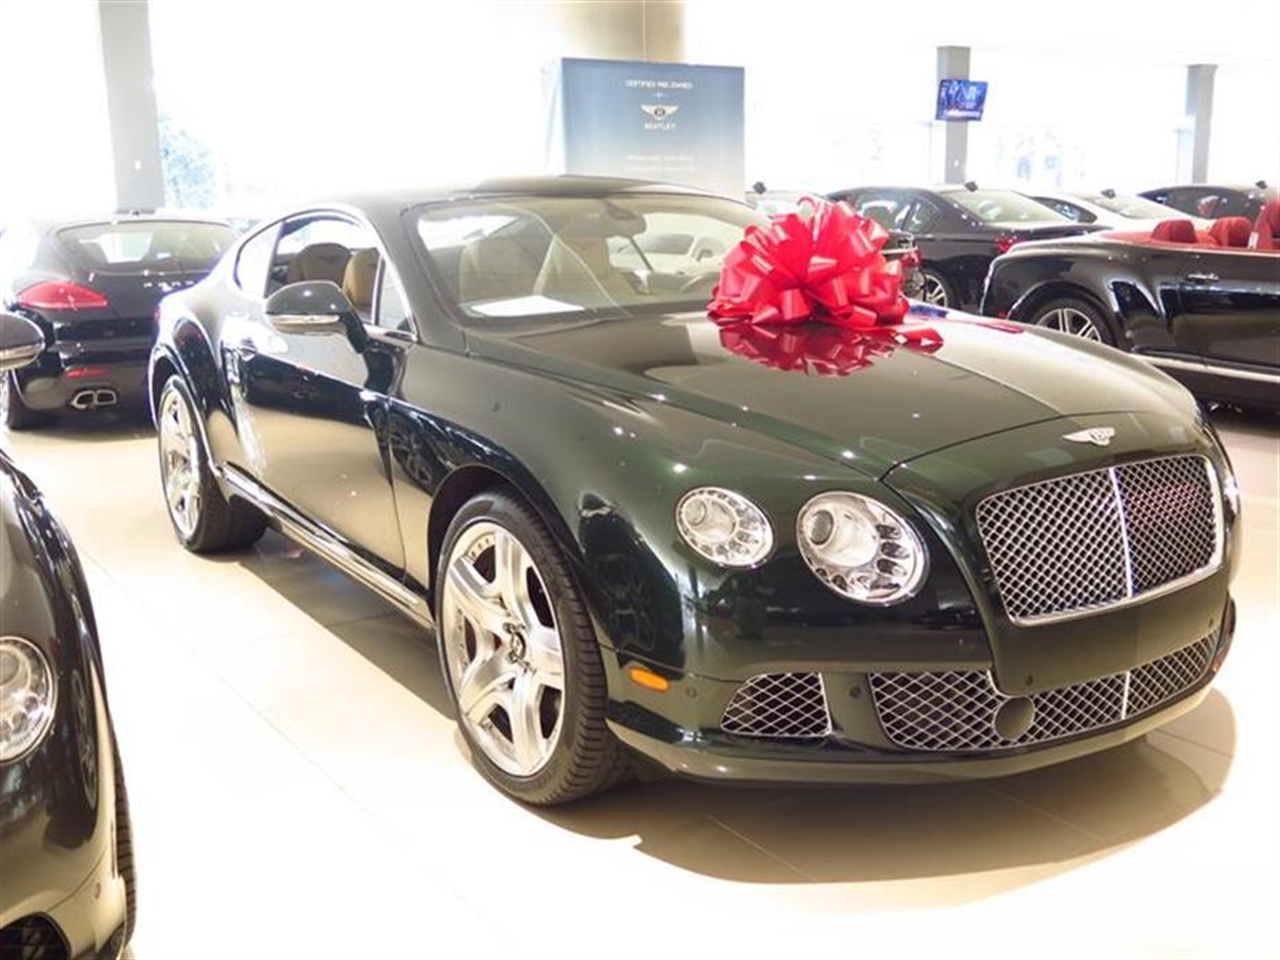 2012 BENTLEY CONTINENTAL GT 2dr Cpe 9567 miles 3-spoke monotone leather trimmed steering wheel Ch